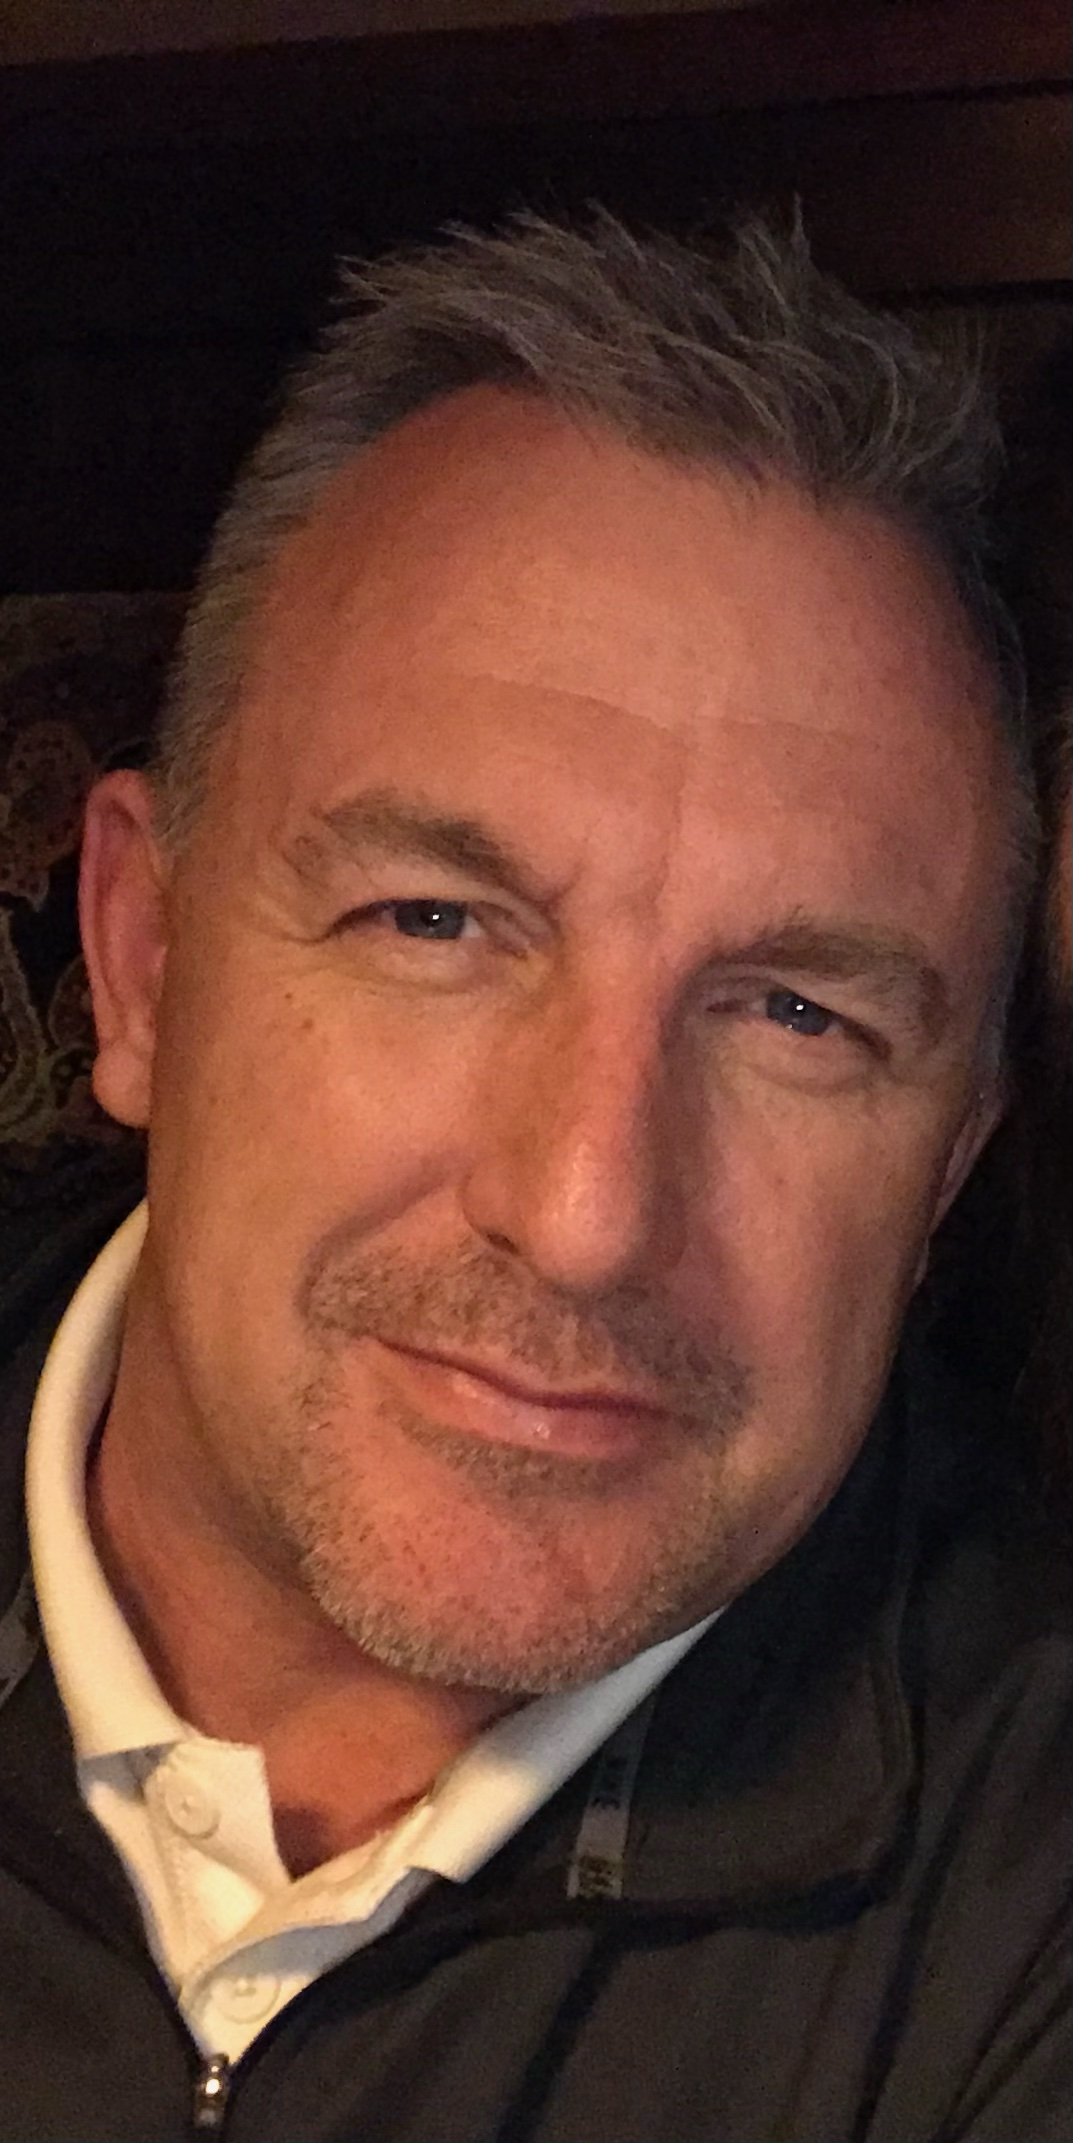 Troy L. Tickle, age 58 of North Platte